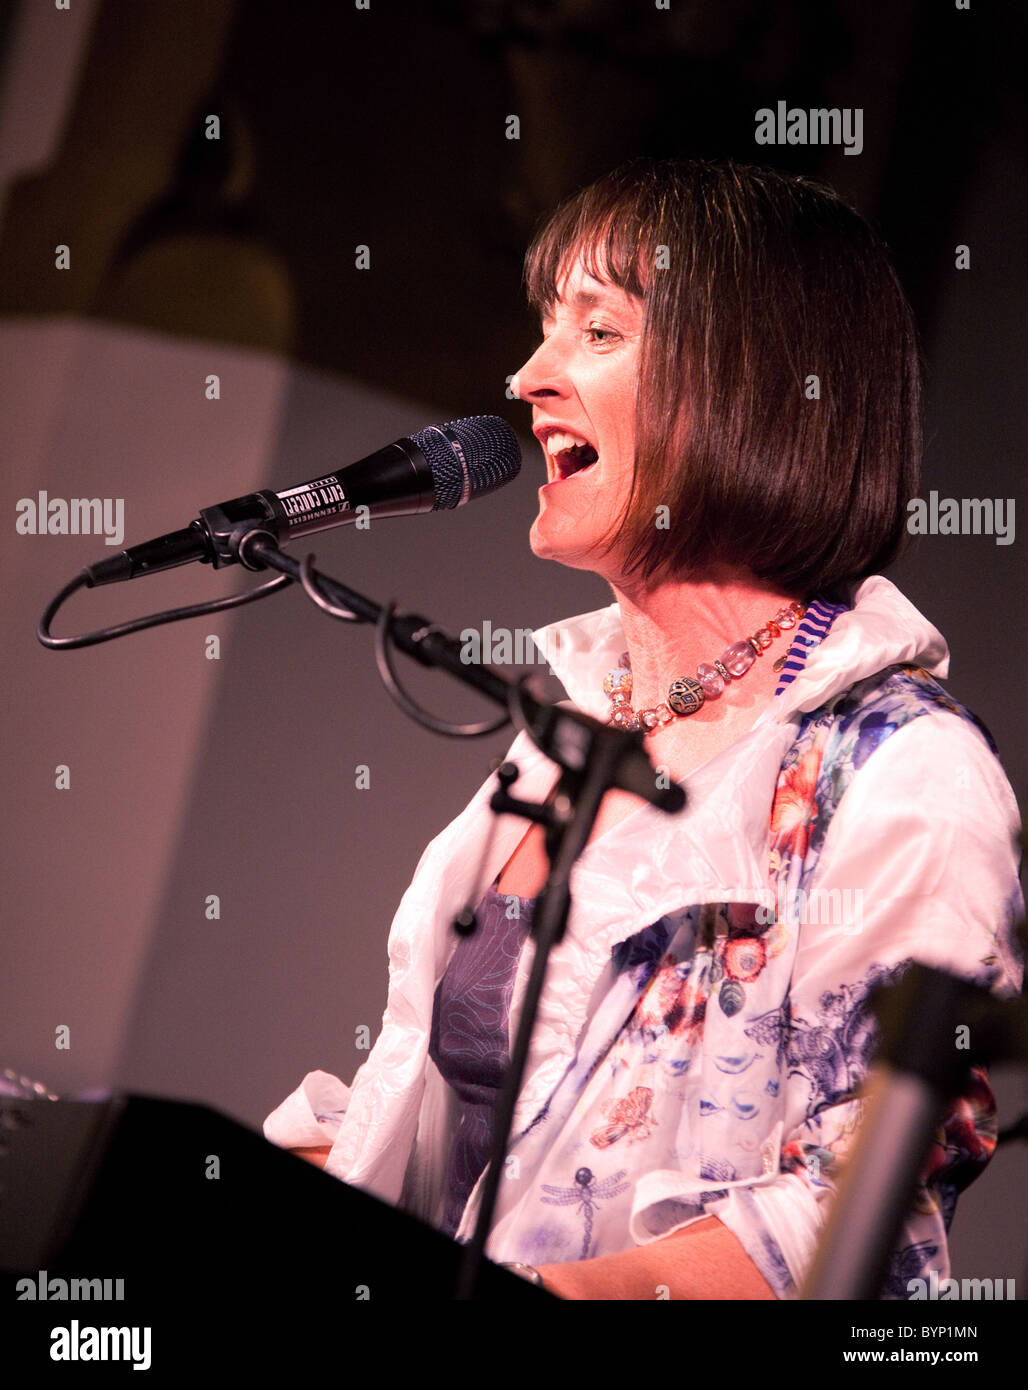 Female singer/vocalist Joanne Hogg fronting the Celtic Rock band Iona on stage in Newmarket, May 2010 - Stock Image